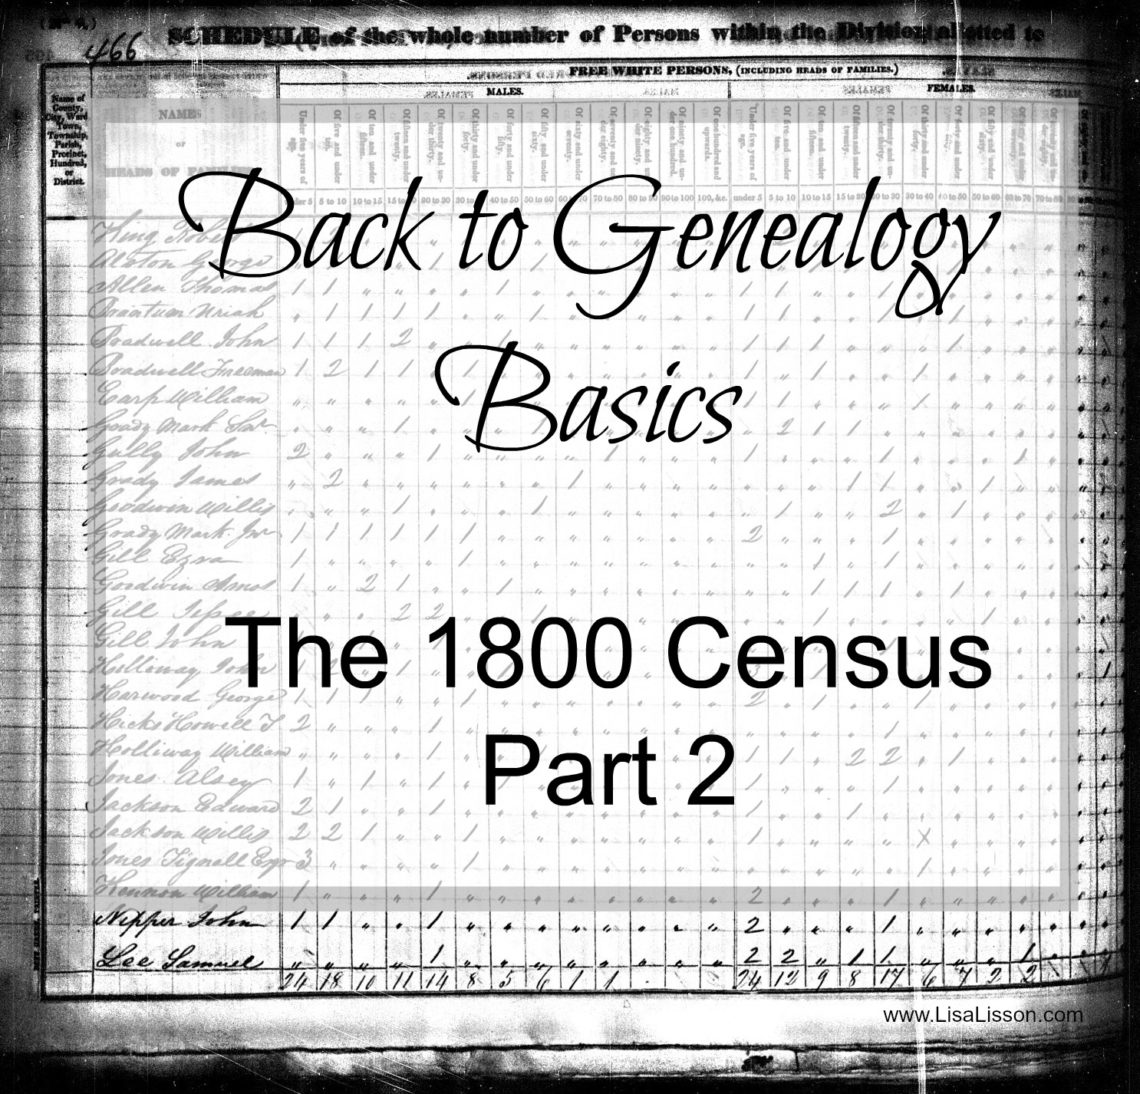 Census records in the early 1800s are difficult to assess. Only the head of the household was listed and the rest of the household was just a lot of tick marks. What's a genealogist to do?